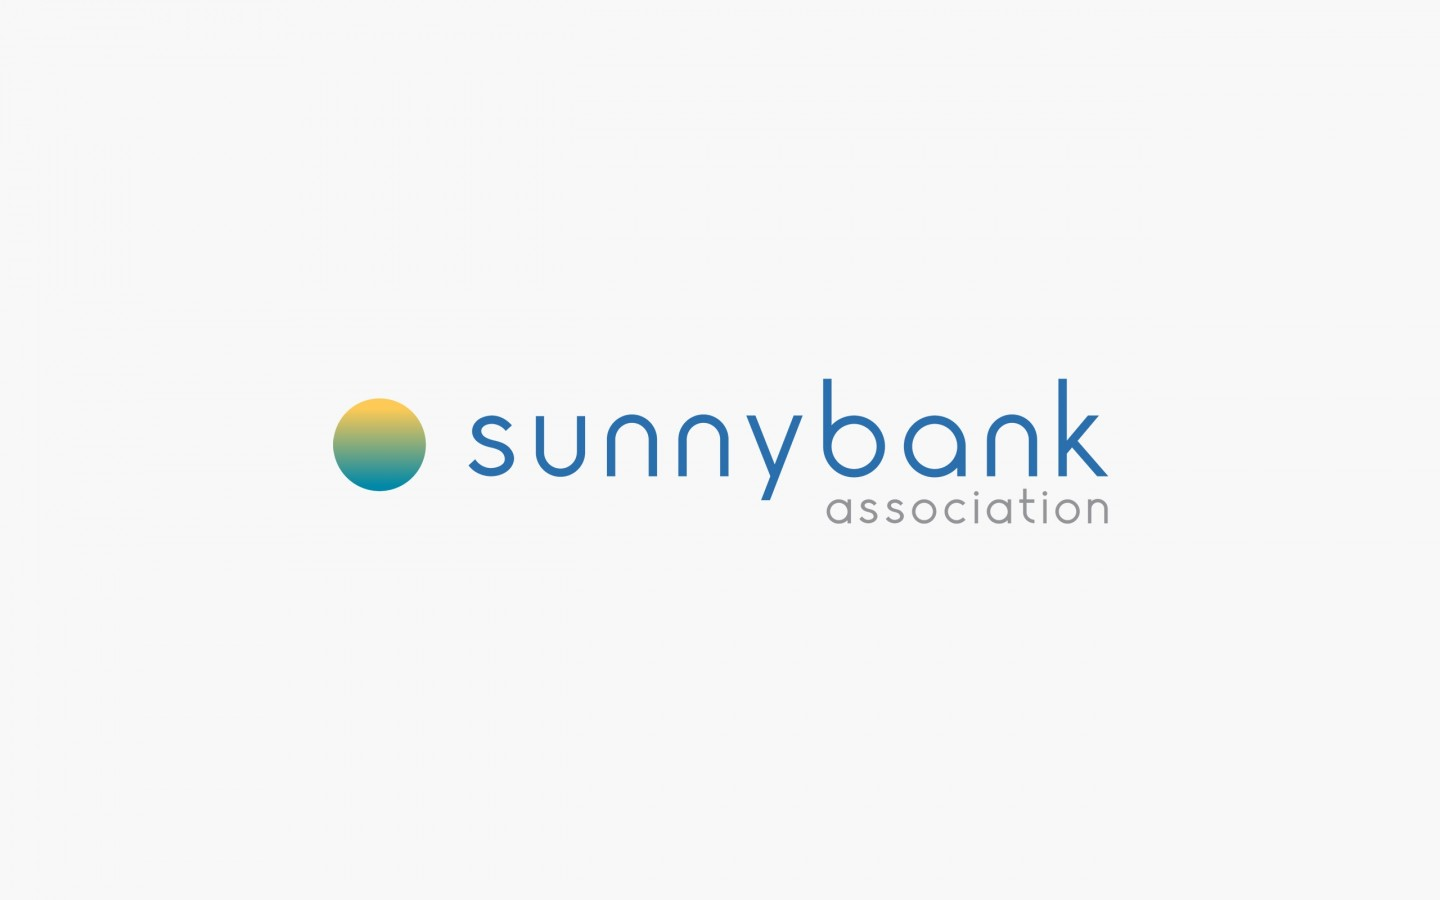 Sunnybank Association Branding Project by Crevisio